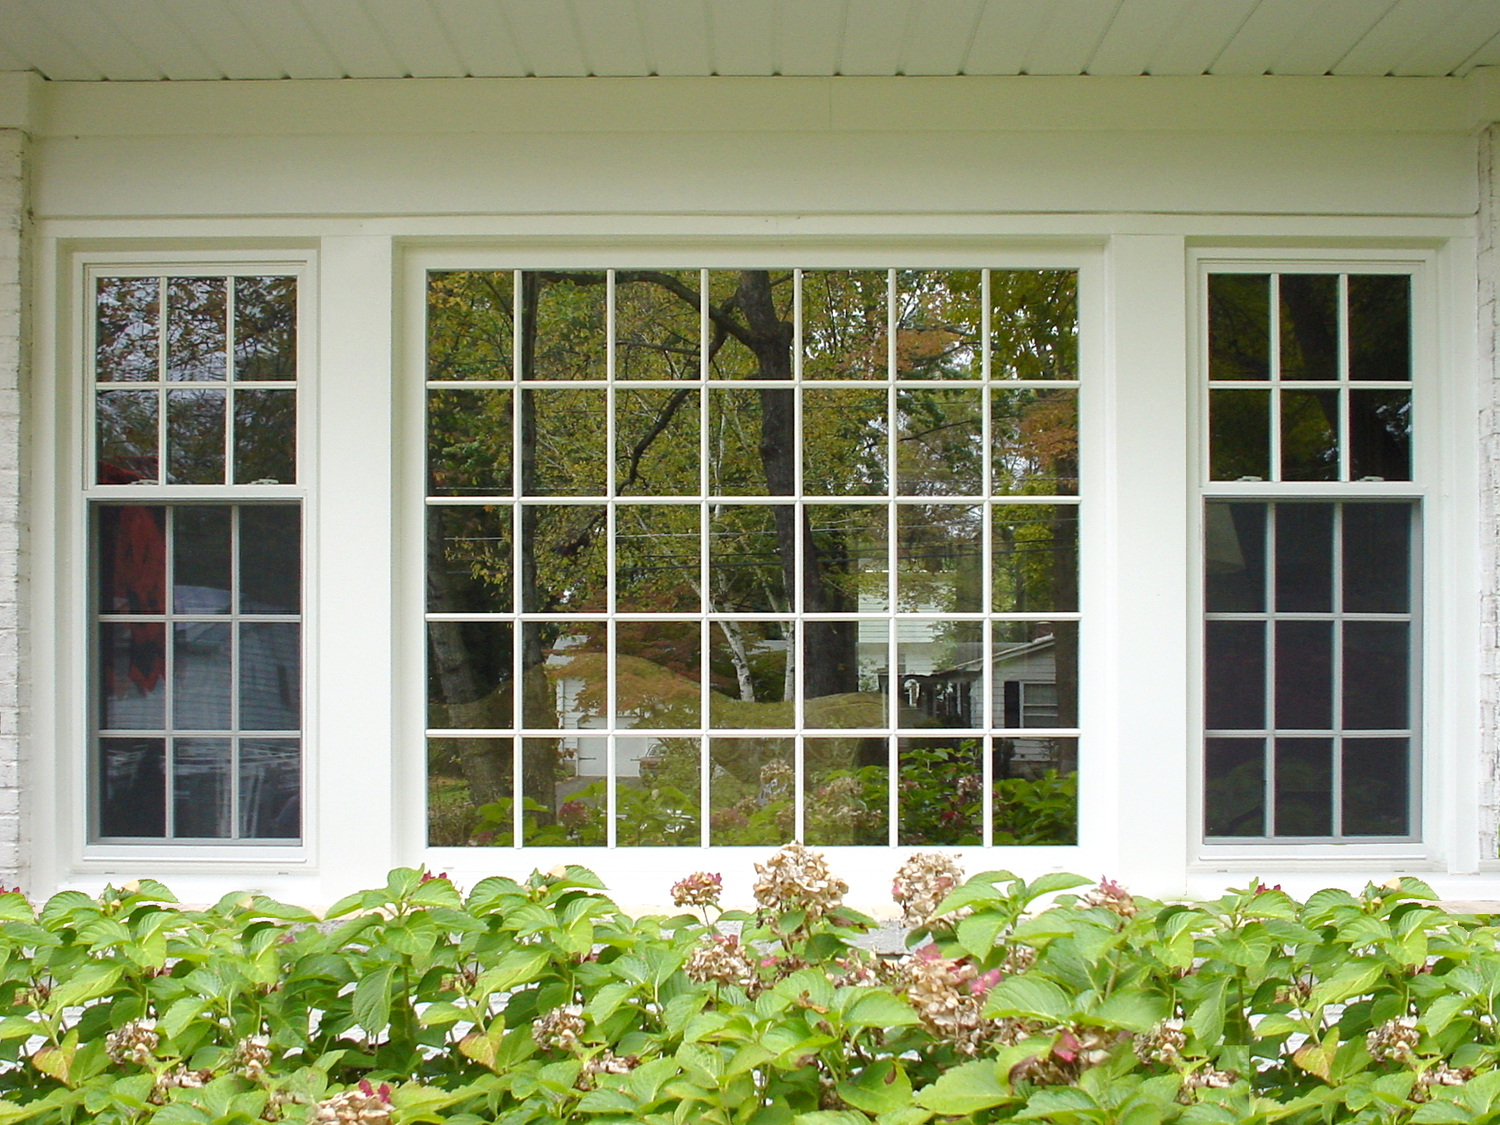 Exterior windows - Our Windows Are Mostly Surplus So Our Inventory Changes Daily We Don T Receive Them On Any Sort Of Schedule And We Don T Get The Same Thing Every Time